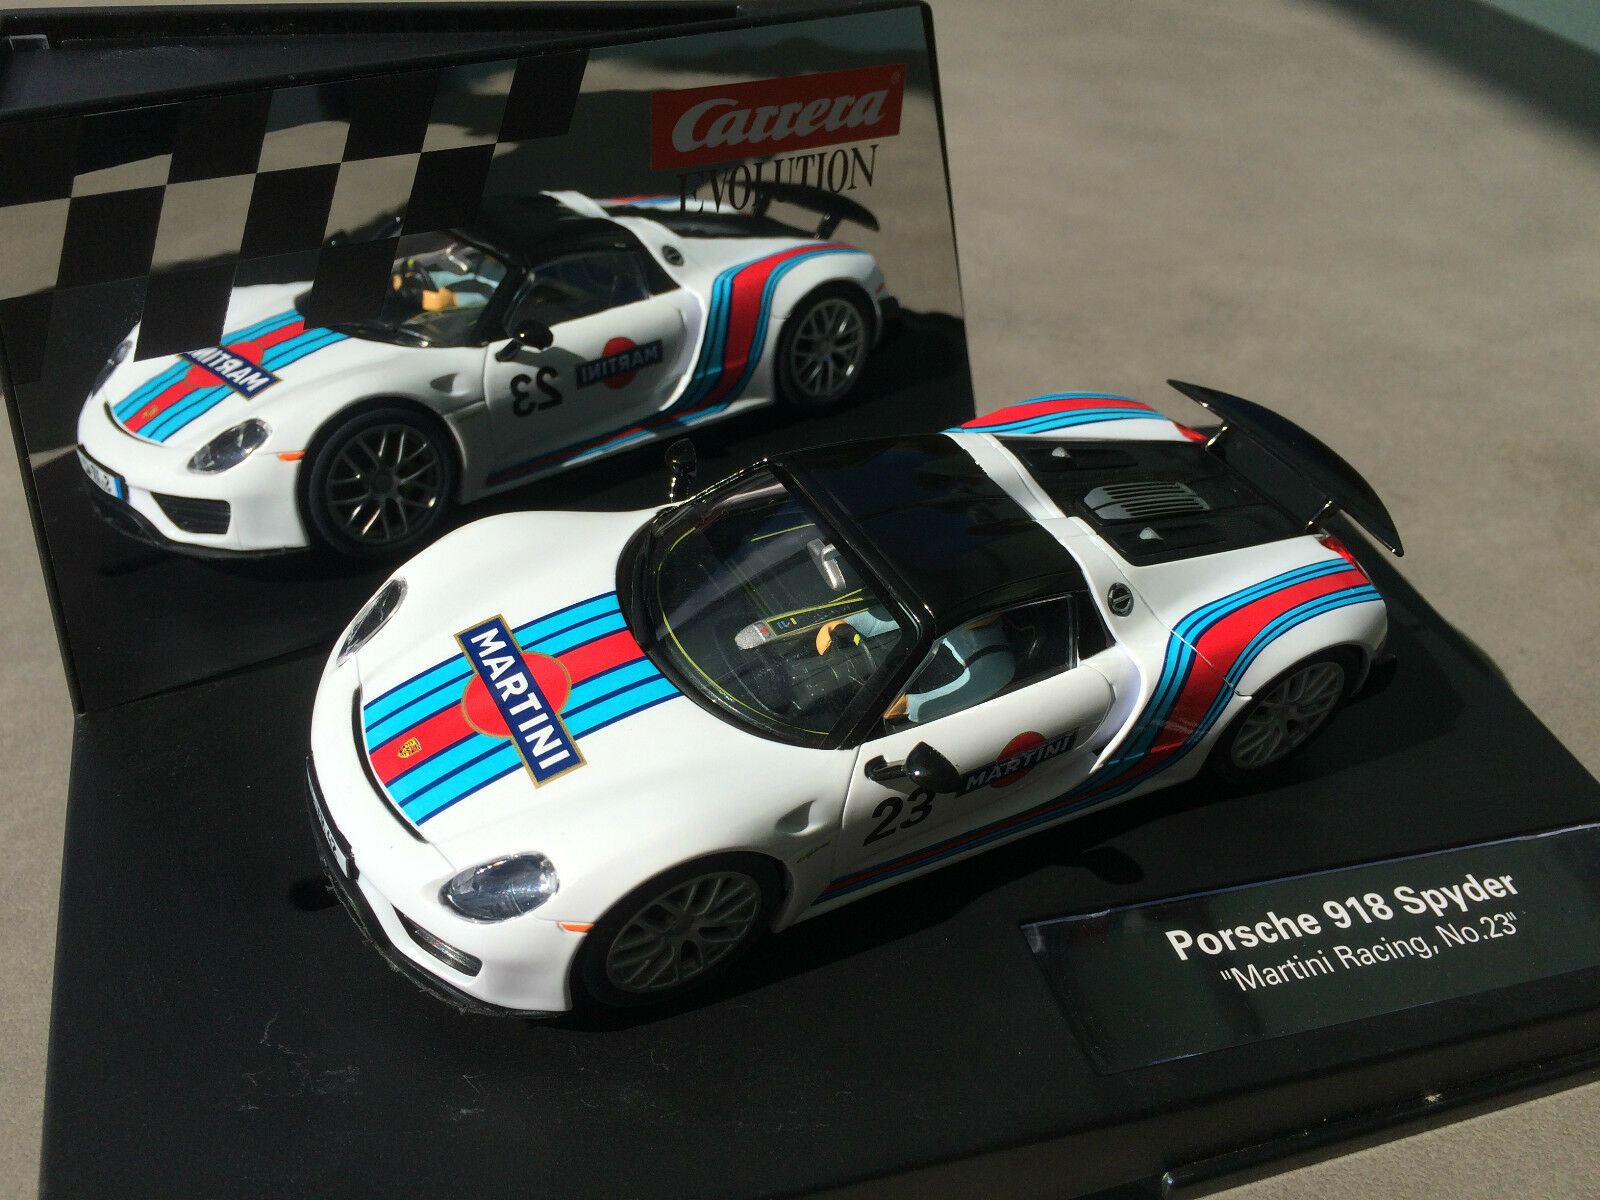 Carrera Evolution 27467 Porsche 918 Spyder   Martini Racing, no. 23   NIP